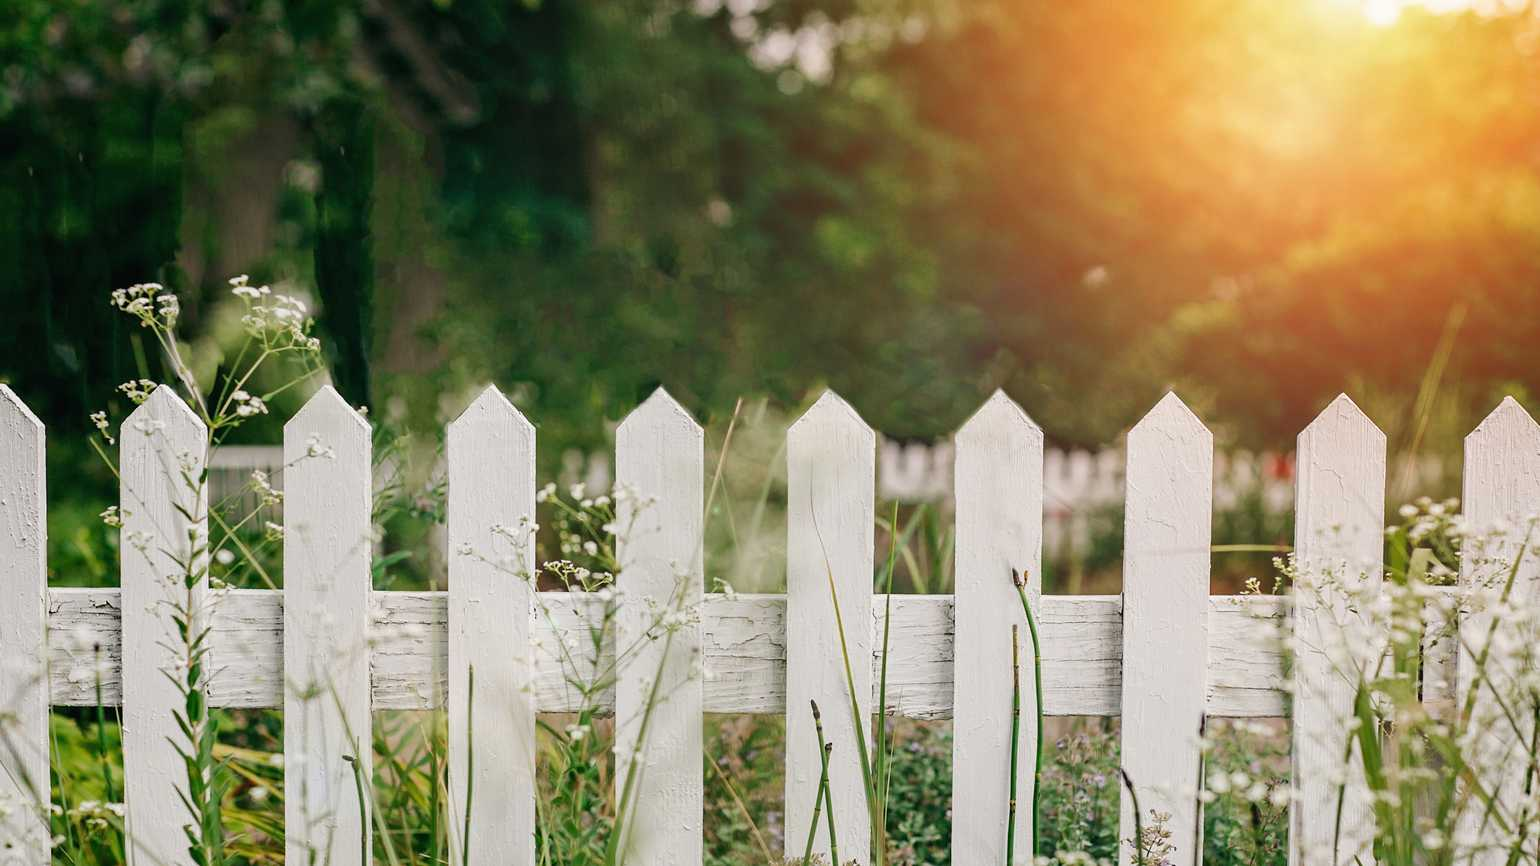 A country fence with sunshine peeking in.